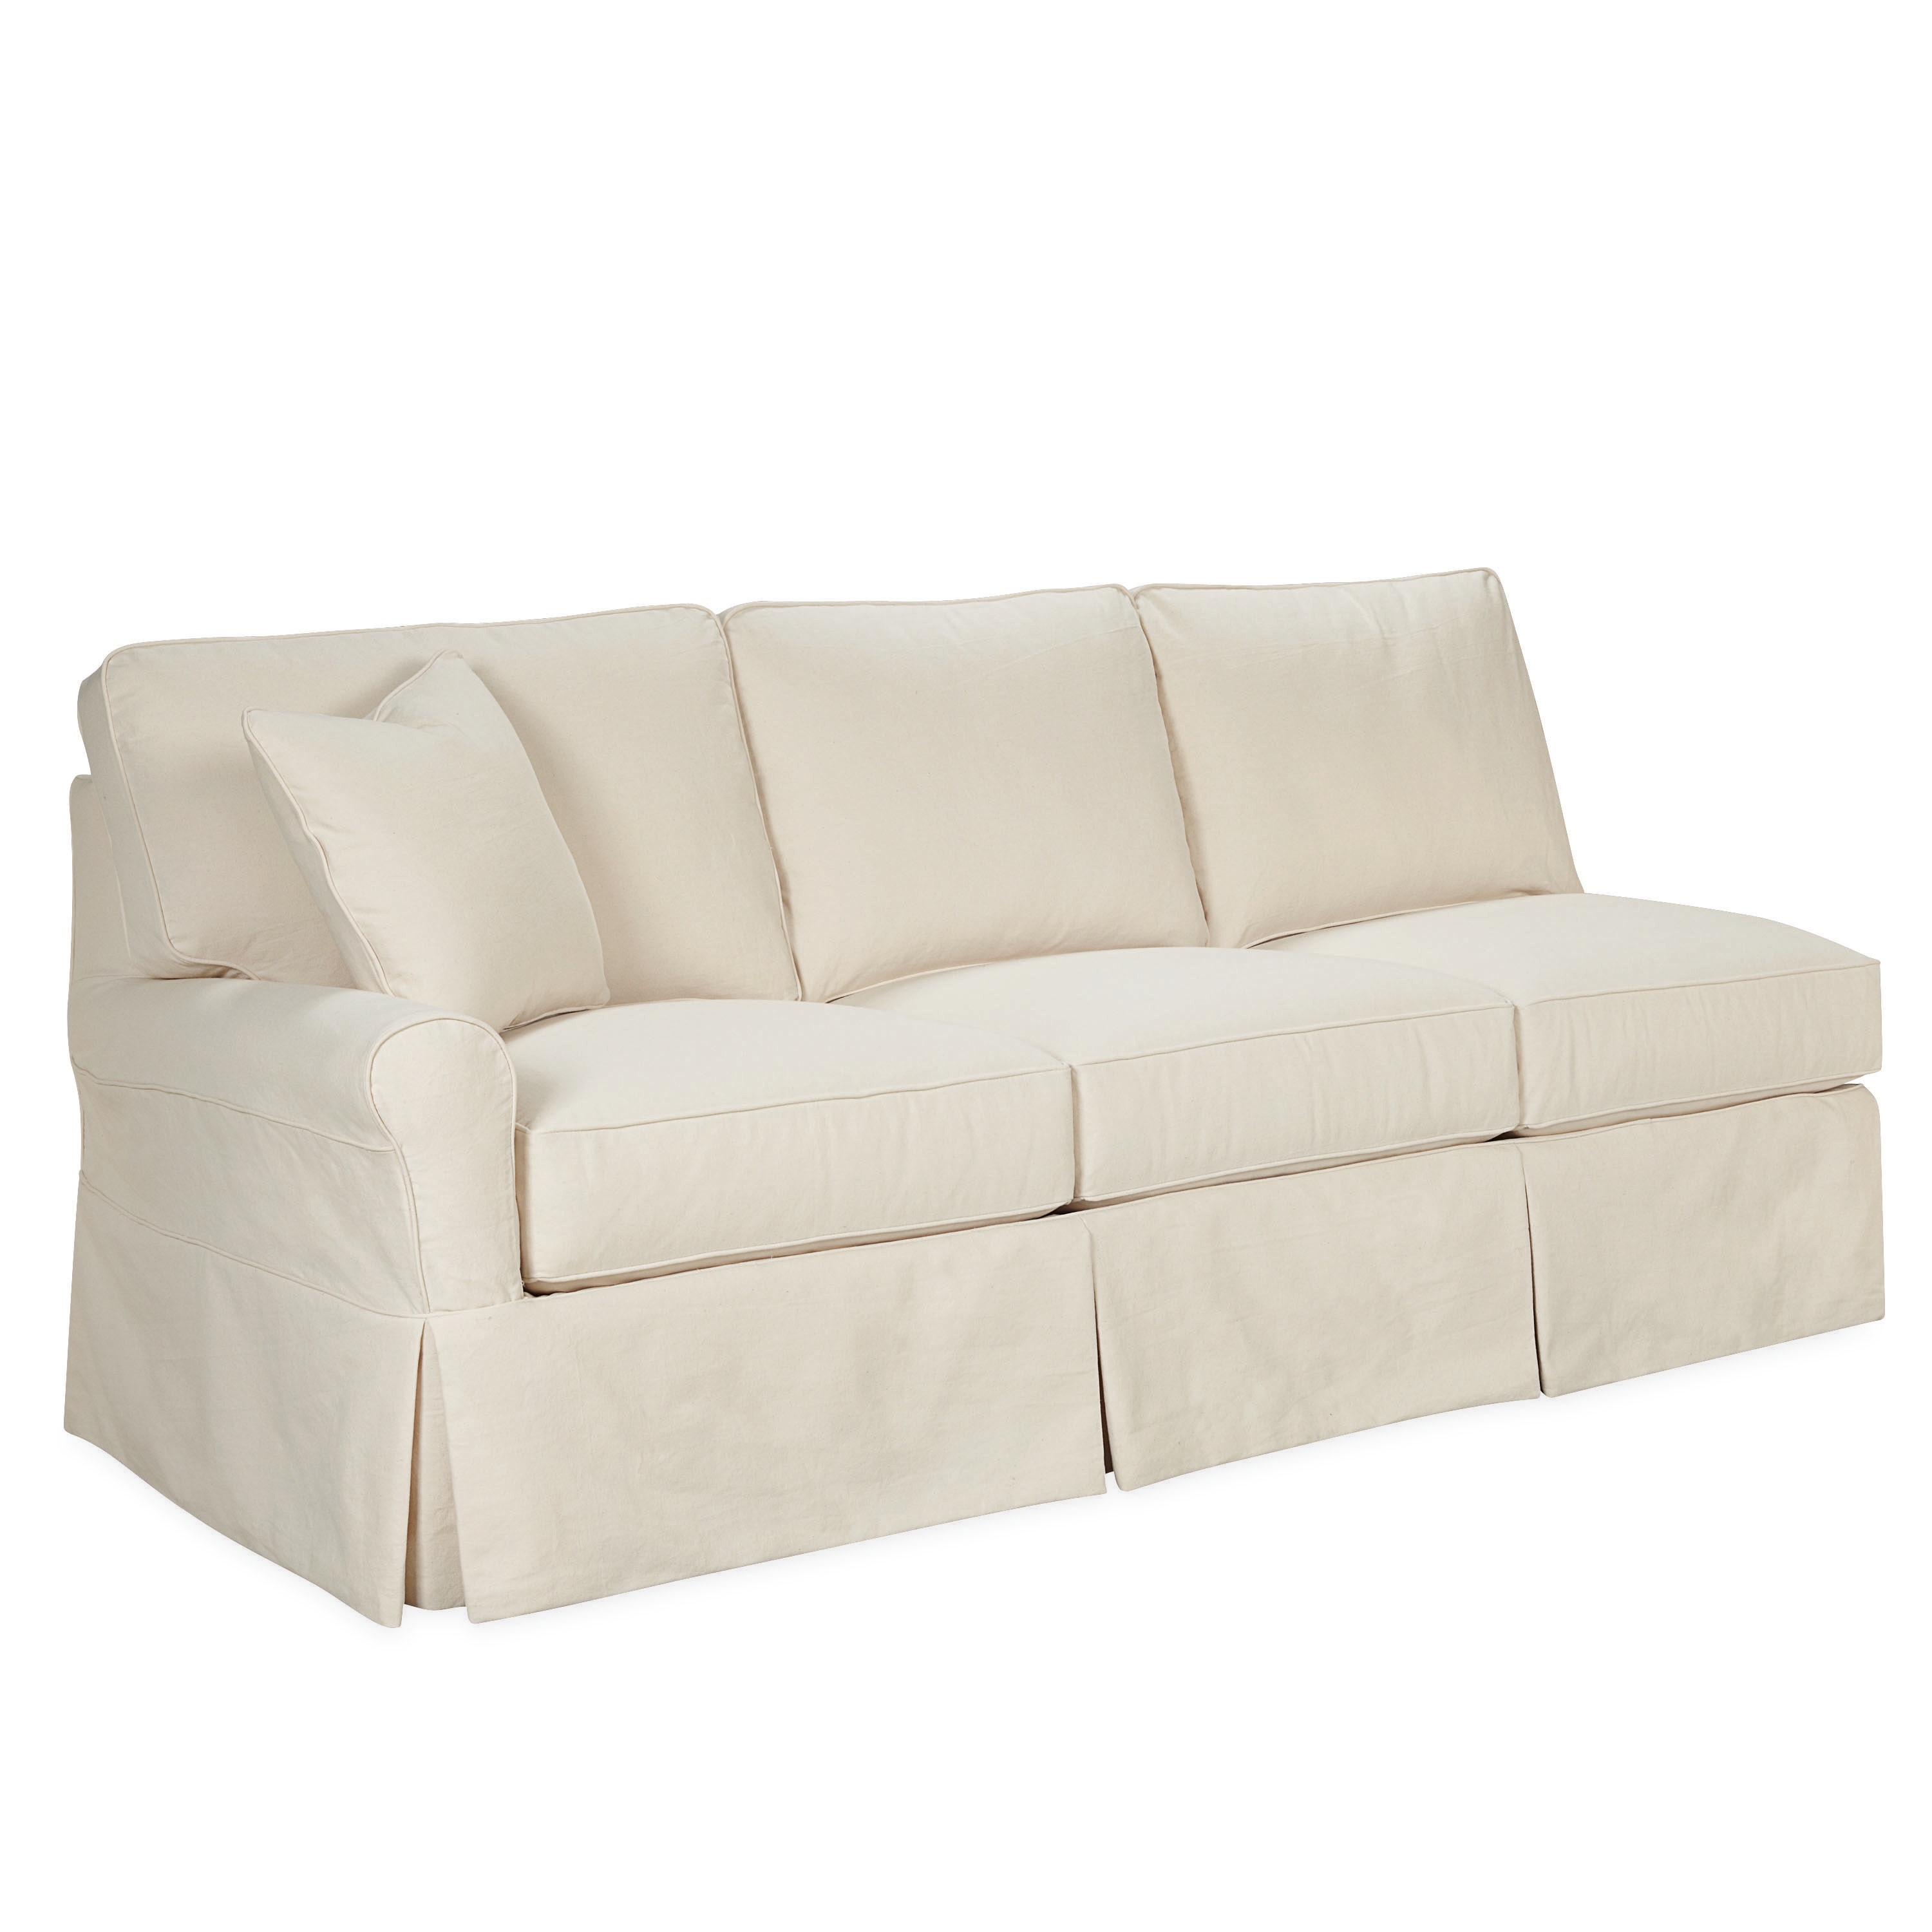 one arm sofa slipcover leather studded lee industries living room slipcovered queen sleeper c5632 29lf